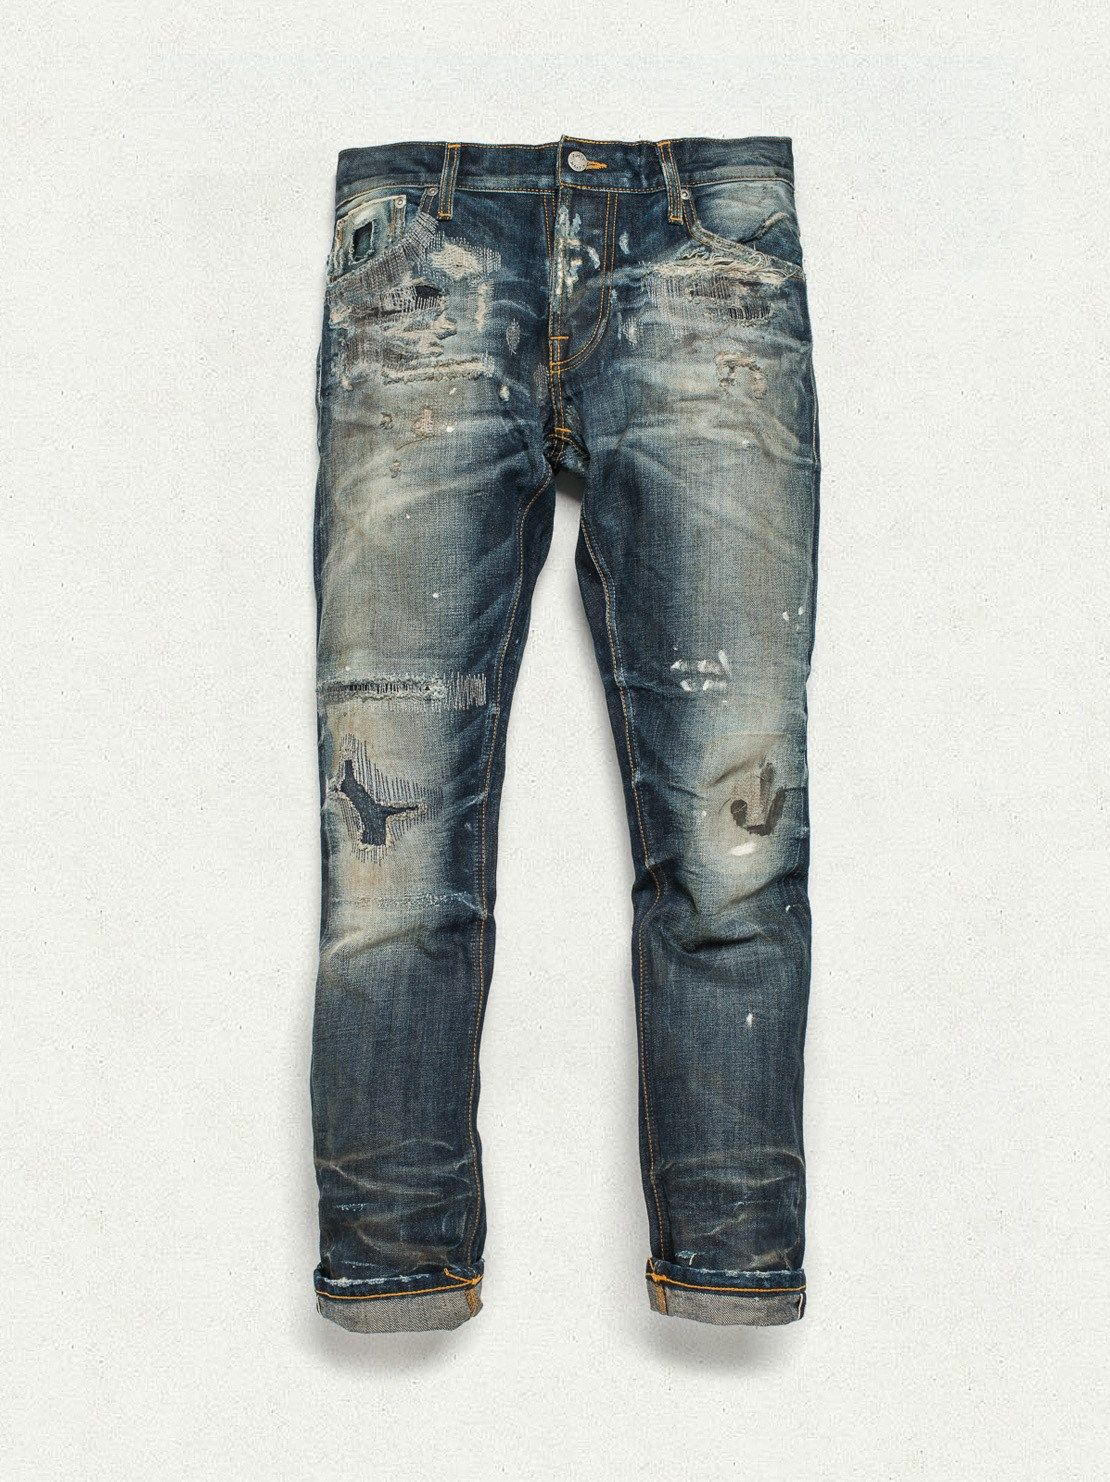 cbef37254b4 Grim Tim Stone Mason Replica - Nudie Jeans *(Note: Usually I'm not a fan of  any pre-distressed or washed jeans but in this case the